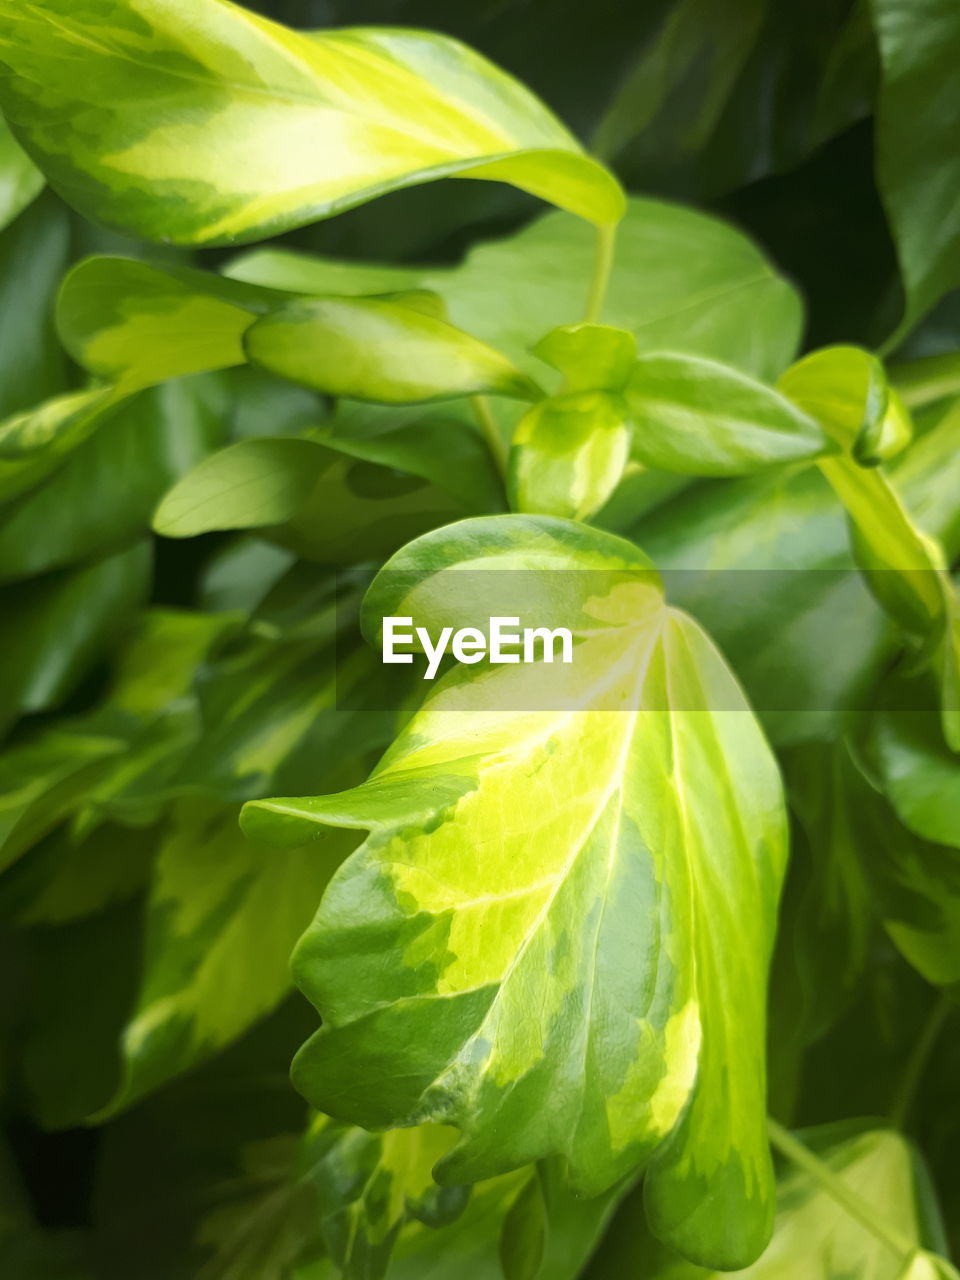 green color, plant part, leaf, growth, plant, freshness, food and drink, food, close-up, no people, healthy eating, beauty in nature, nature, day, vegetable, wellbeing, outdoors, fruit, selective focus, focus on foreground